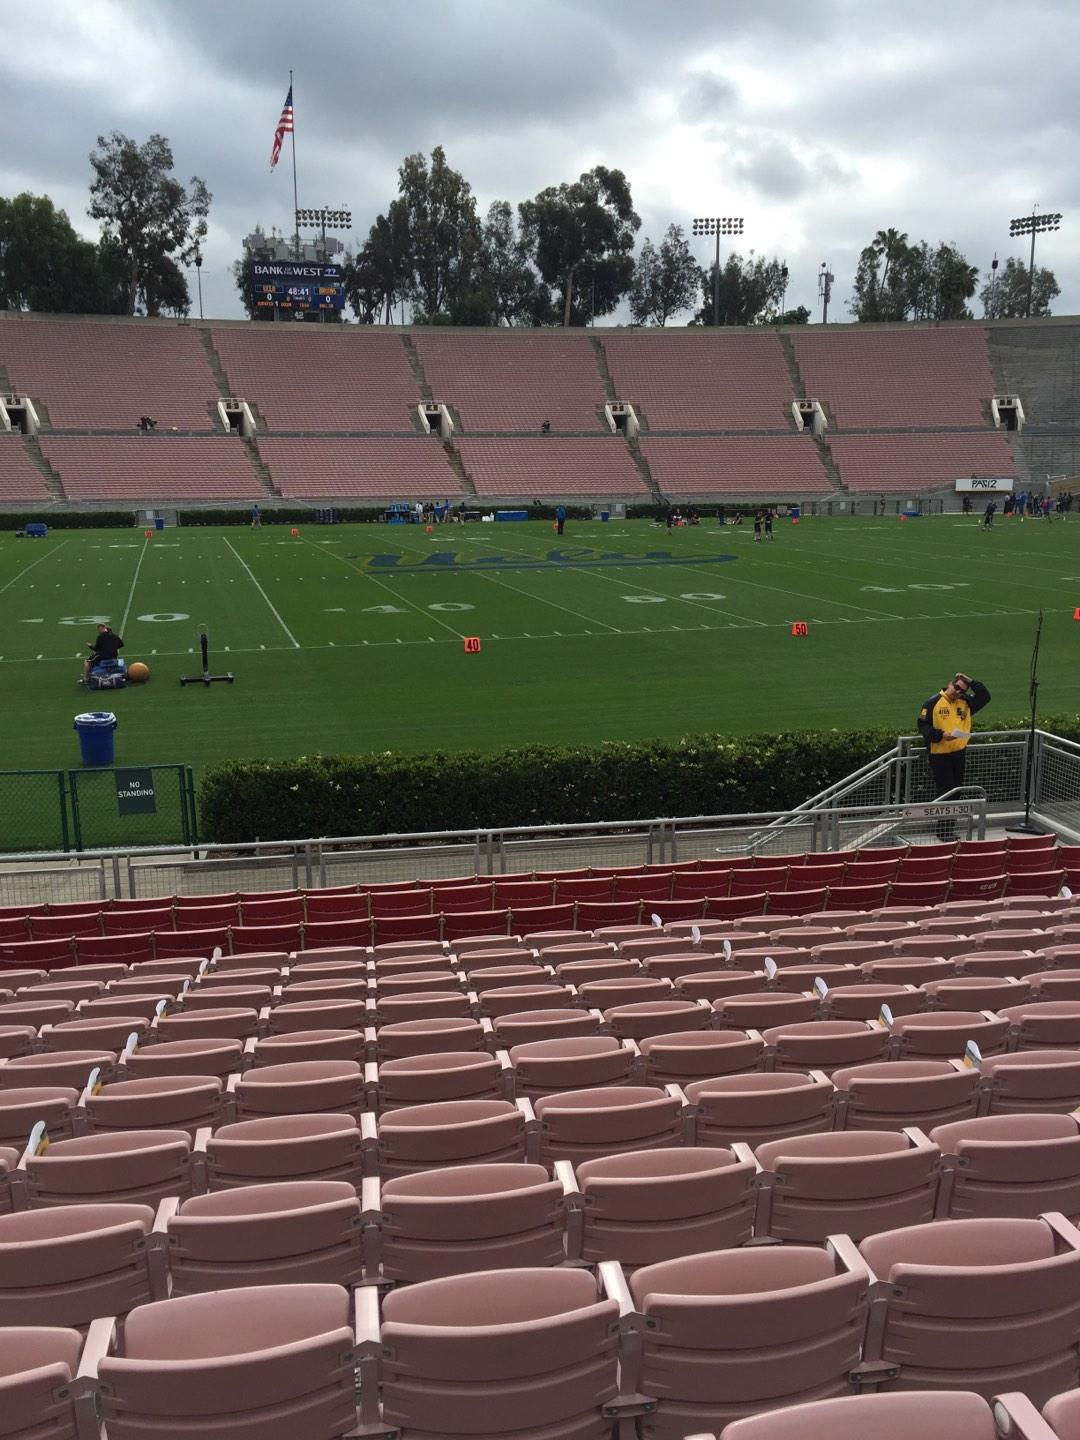 Like many college stadiums, the Rose Bowl has both bleacher seating and full seats. The sections that provide seat backs are along the sidelines in sections and These seats are obviously more comfortable and have more leg room than the bleacher seat sections.